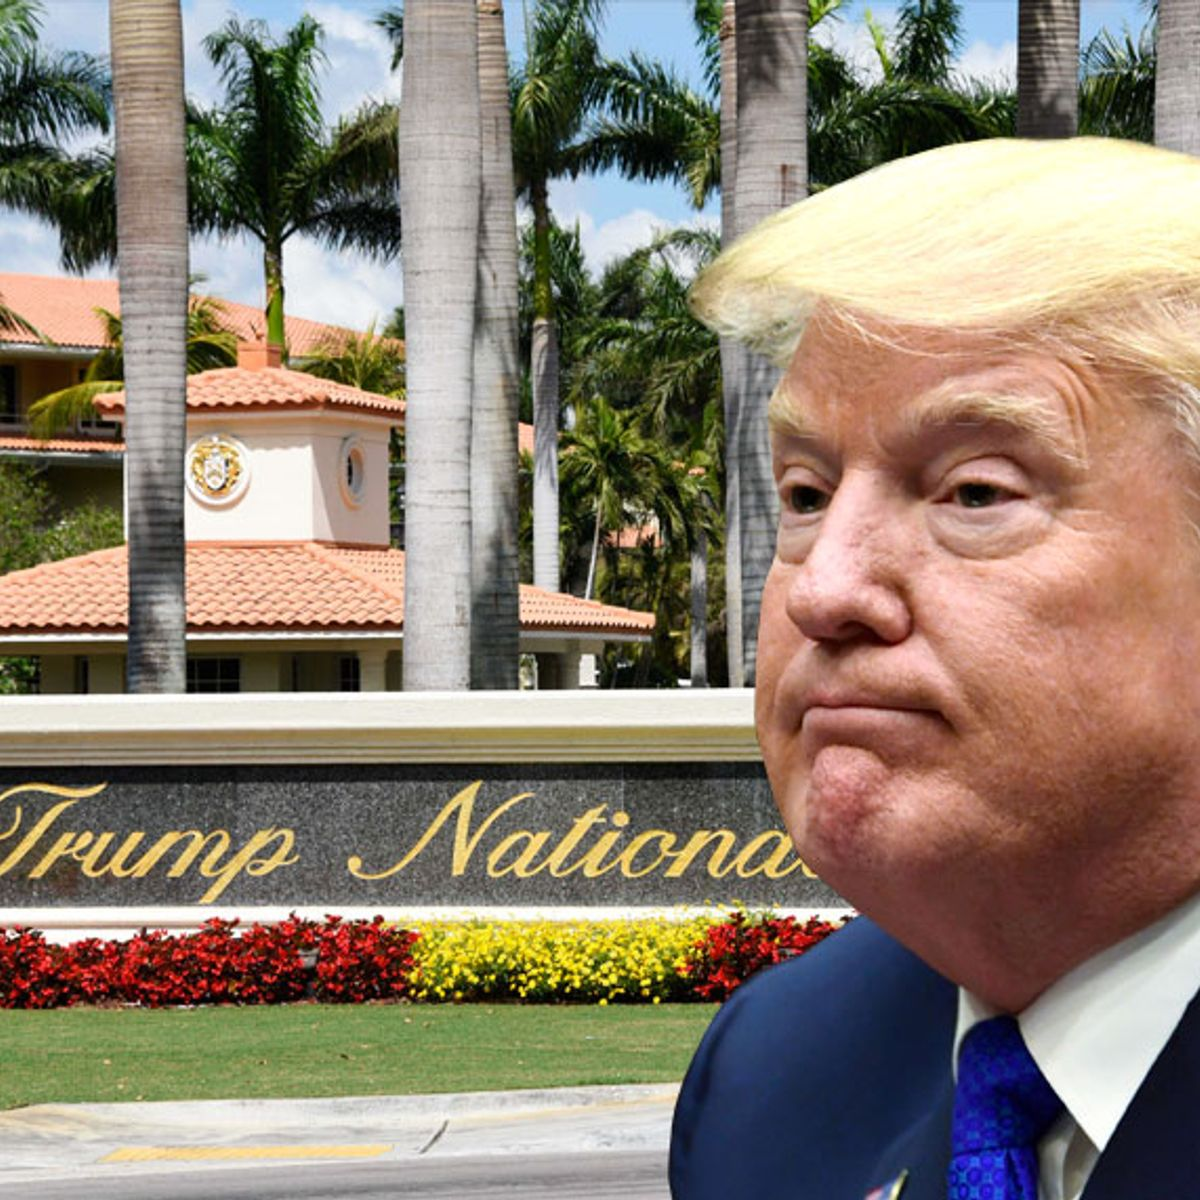 White House announces President Trump will host next year's G7 summit at his Miami golf resort